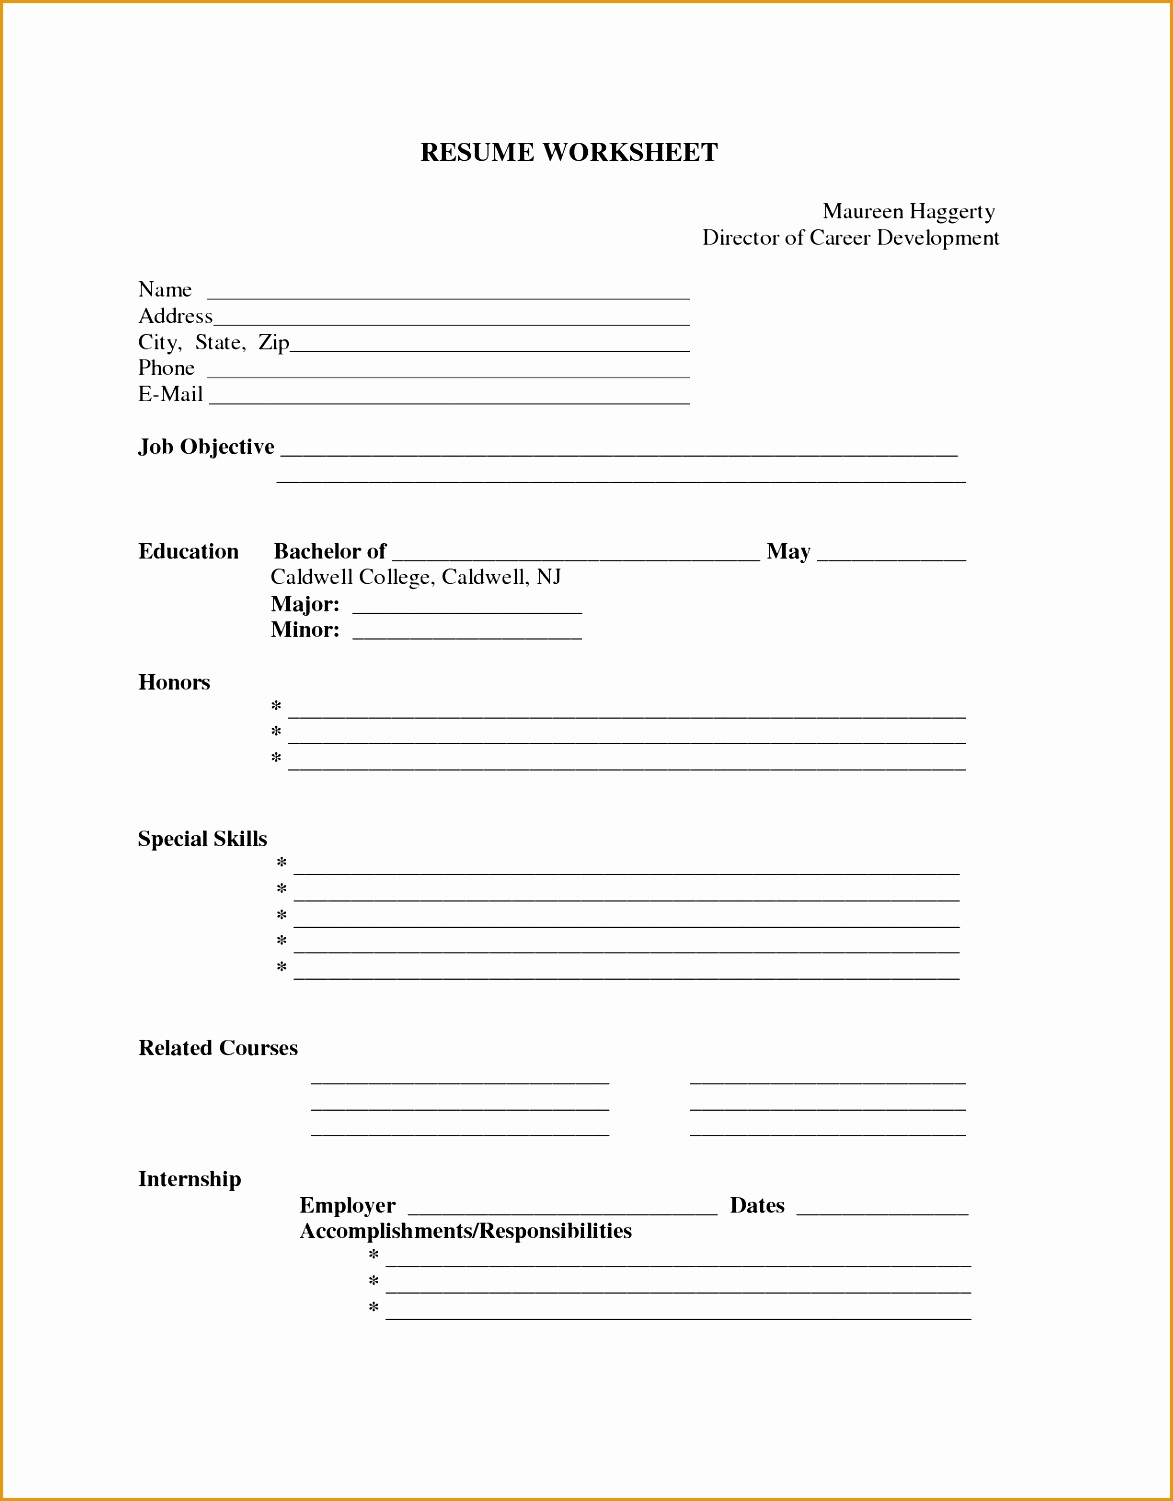 curriculum vitae blank format download